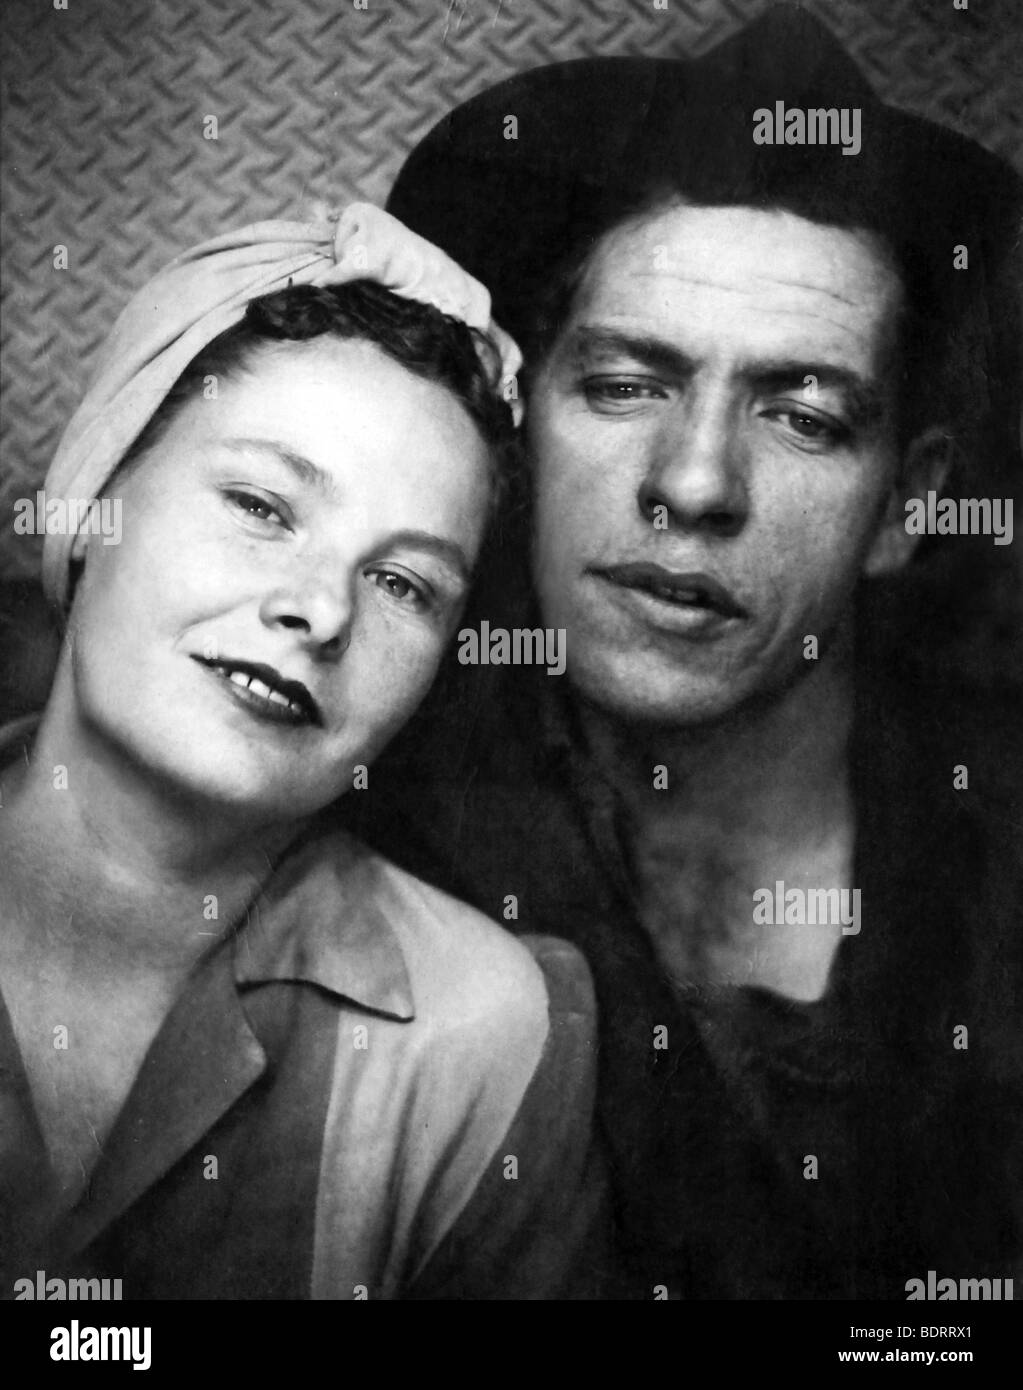 Genuine 1940 Era Factory Worker Couple Portrait. Some Original Print Damage Visible. - Stock Image